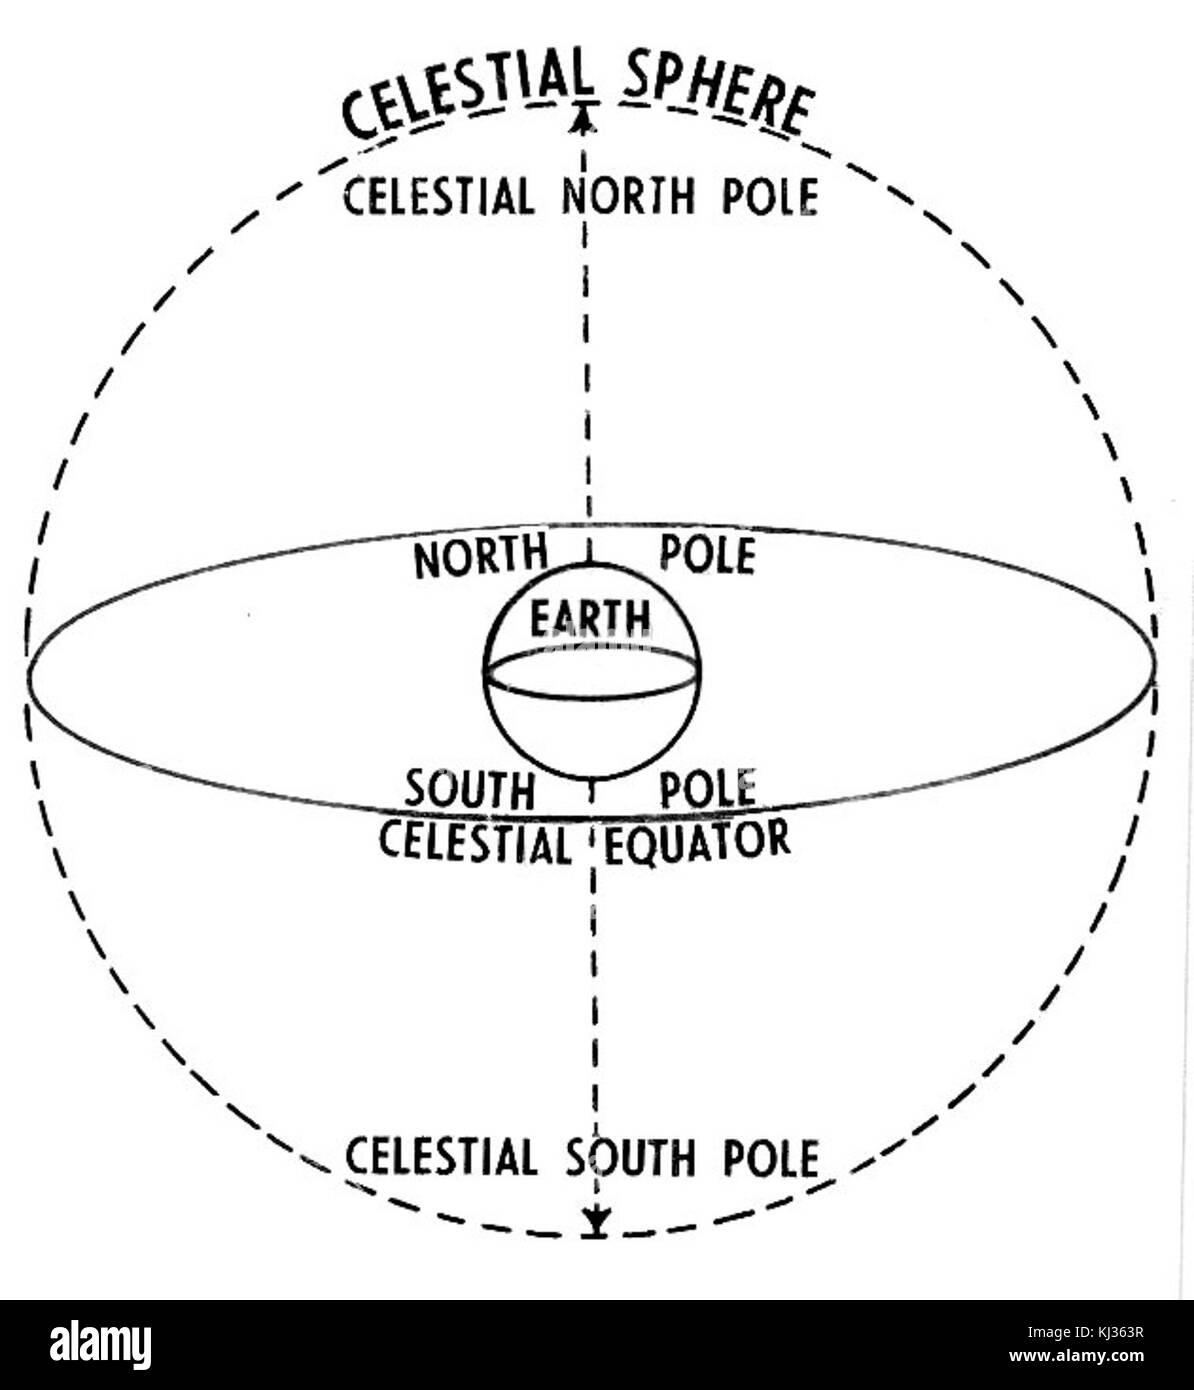 hight resolution of celestial sphere psf stock image